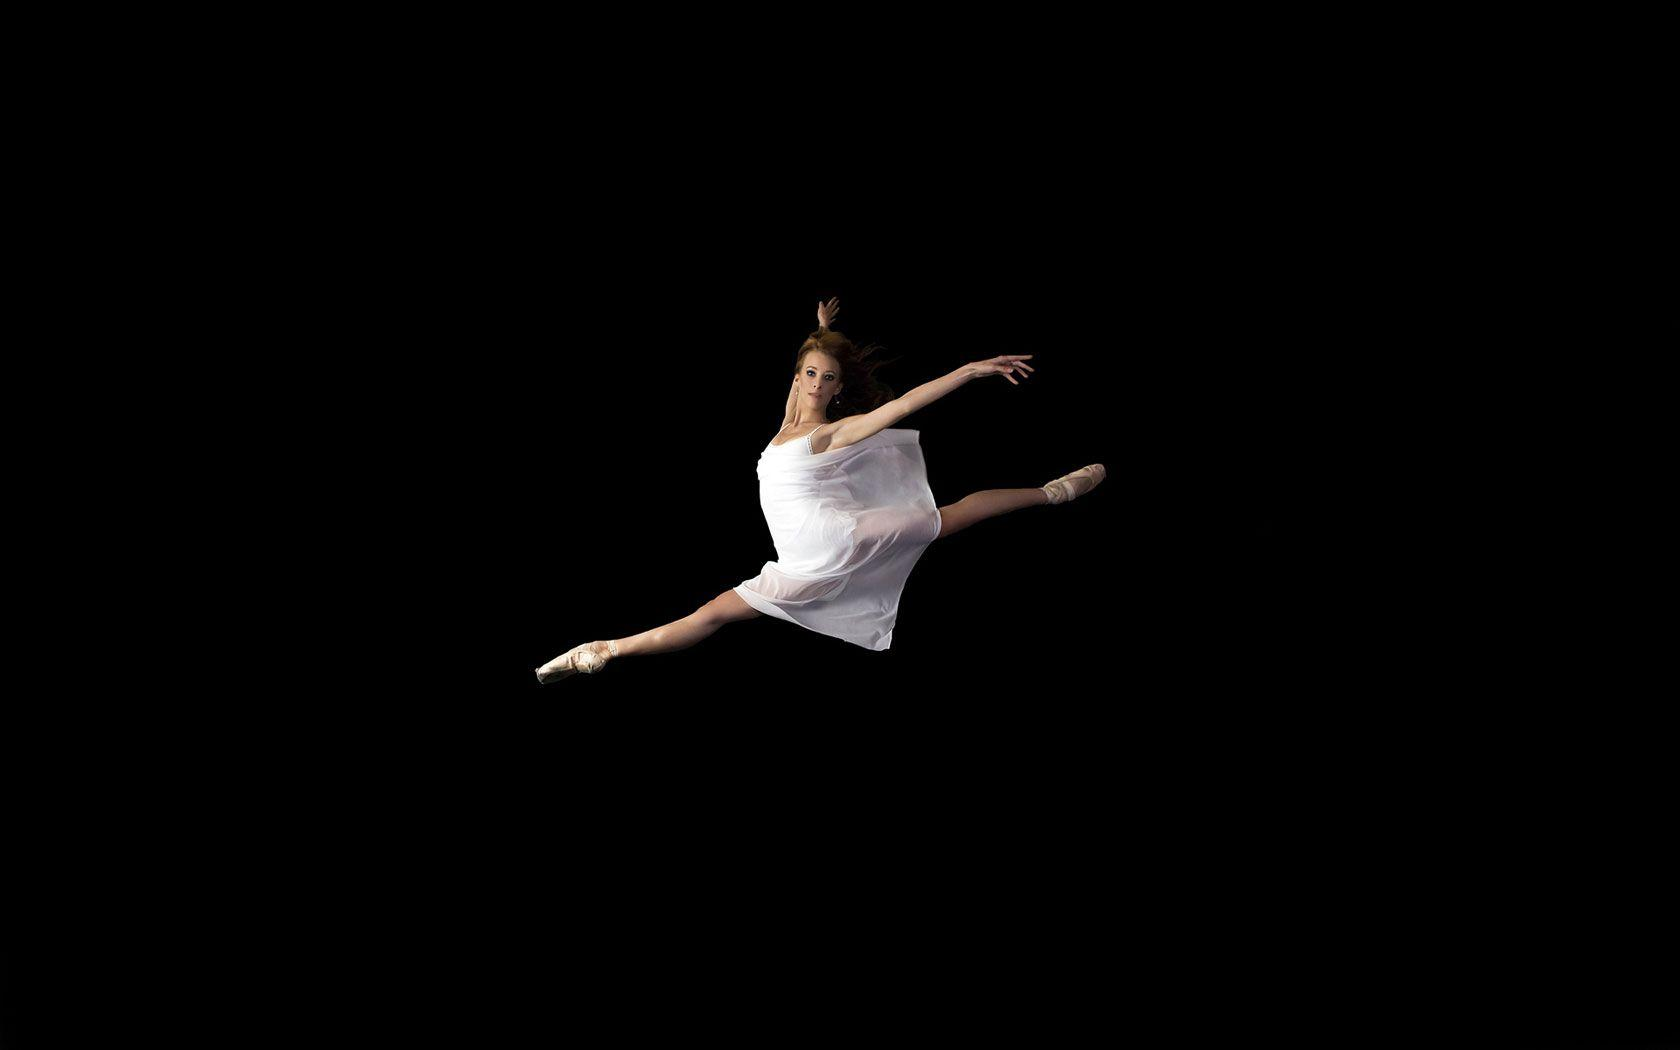 Hd Wallpapers Contemporary Dance Wallpaper Cave